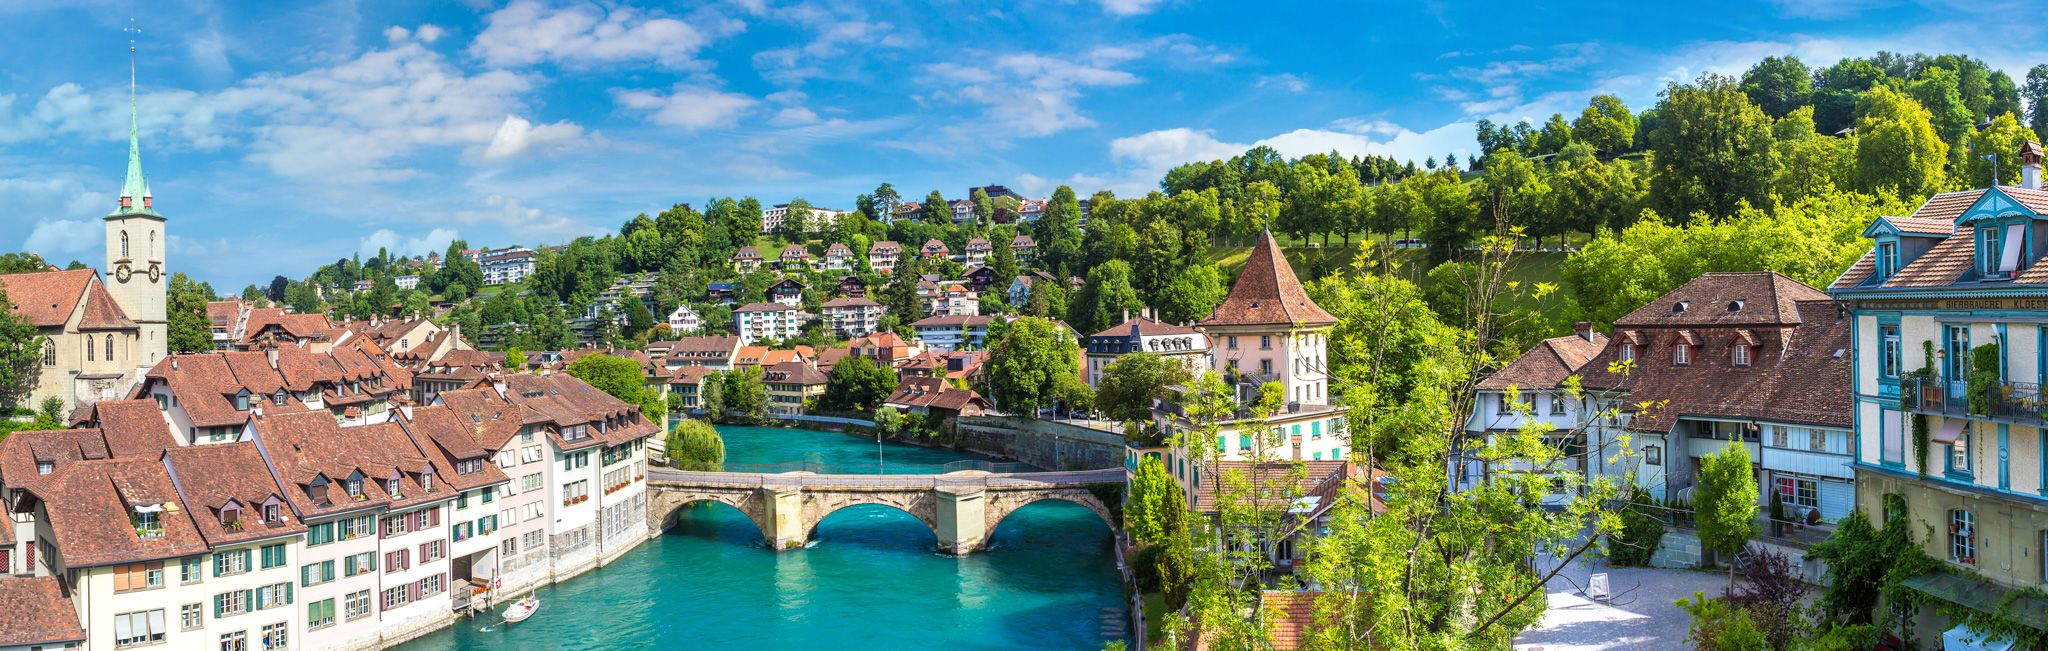 Top 10 Luxury Europe Tours 2019/2020 - TourRadar